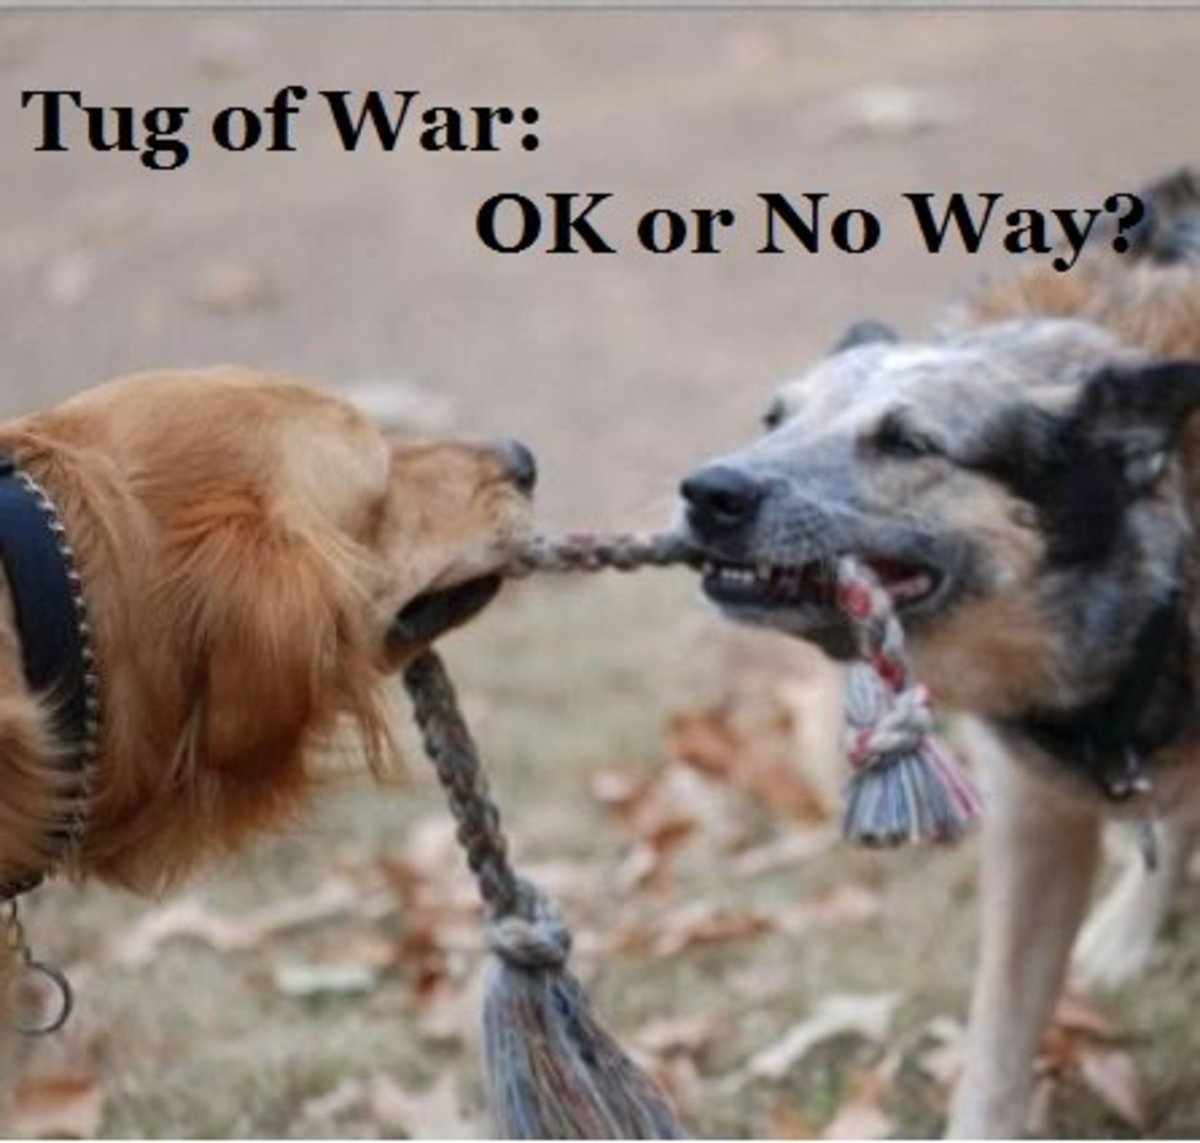 Is It Okay to Play Tug-of-War With the Dog?